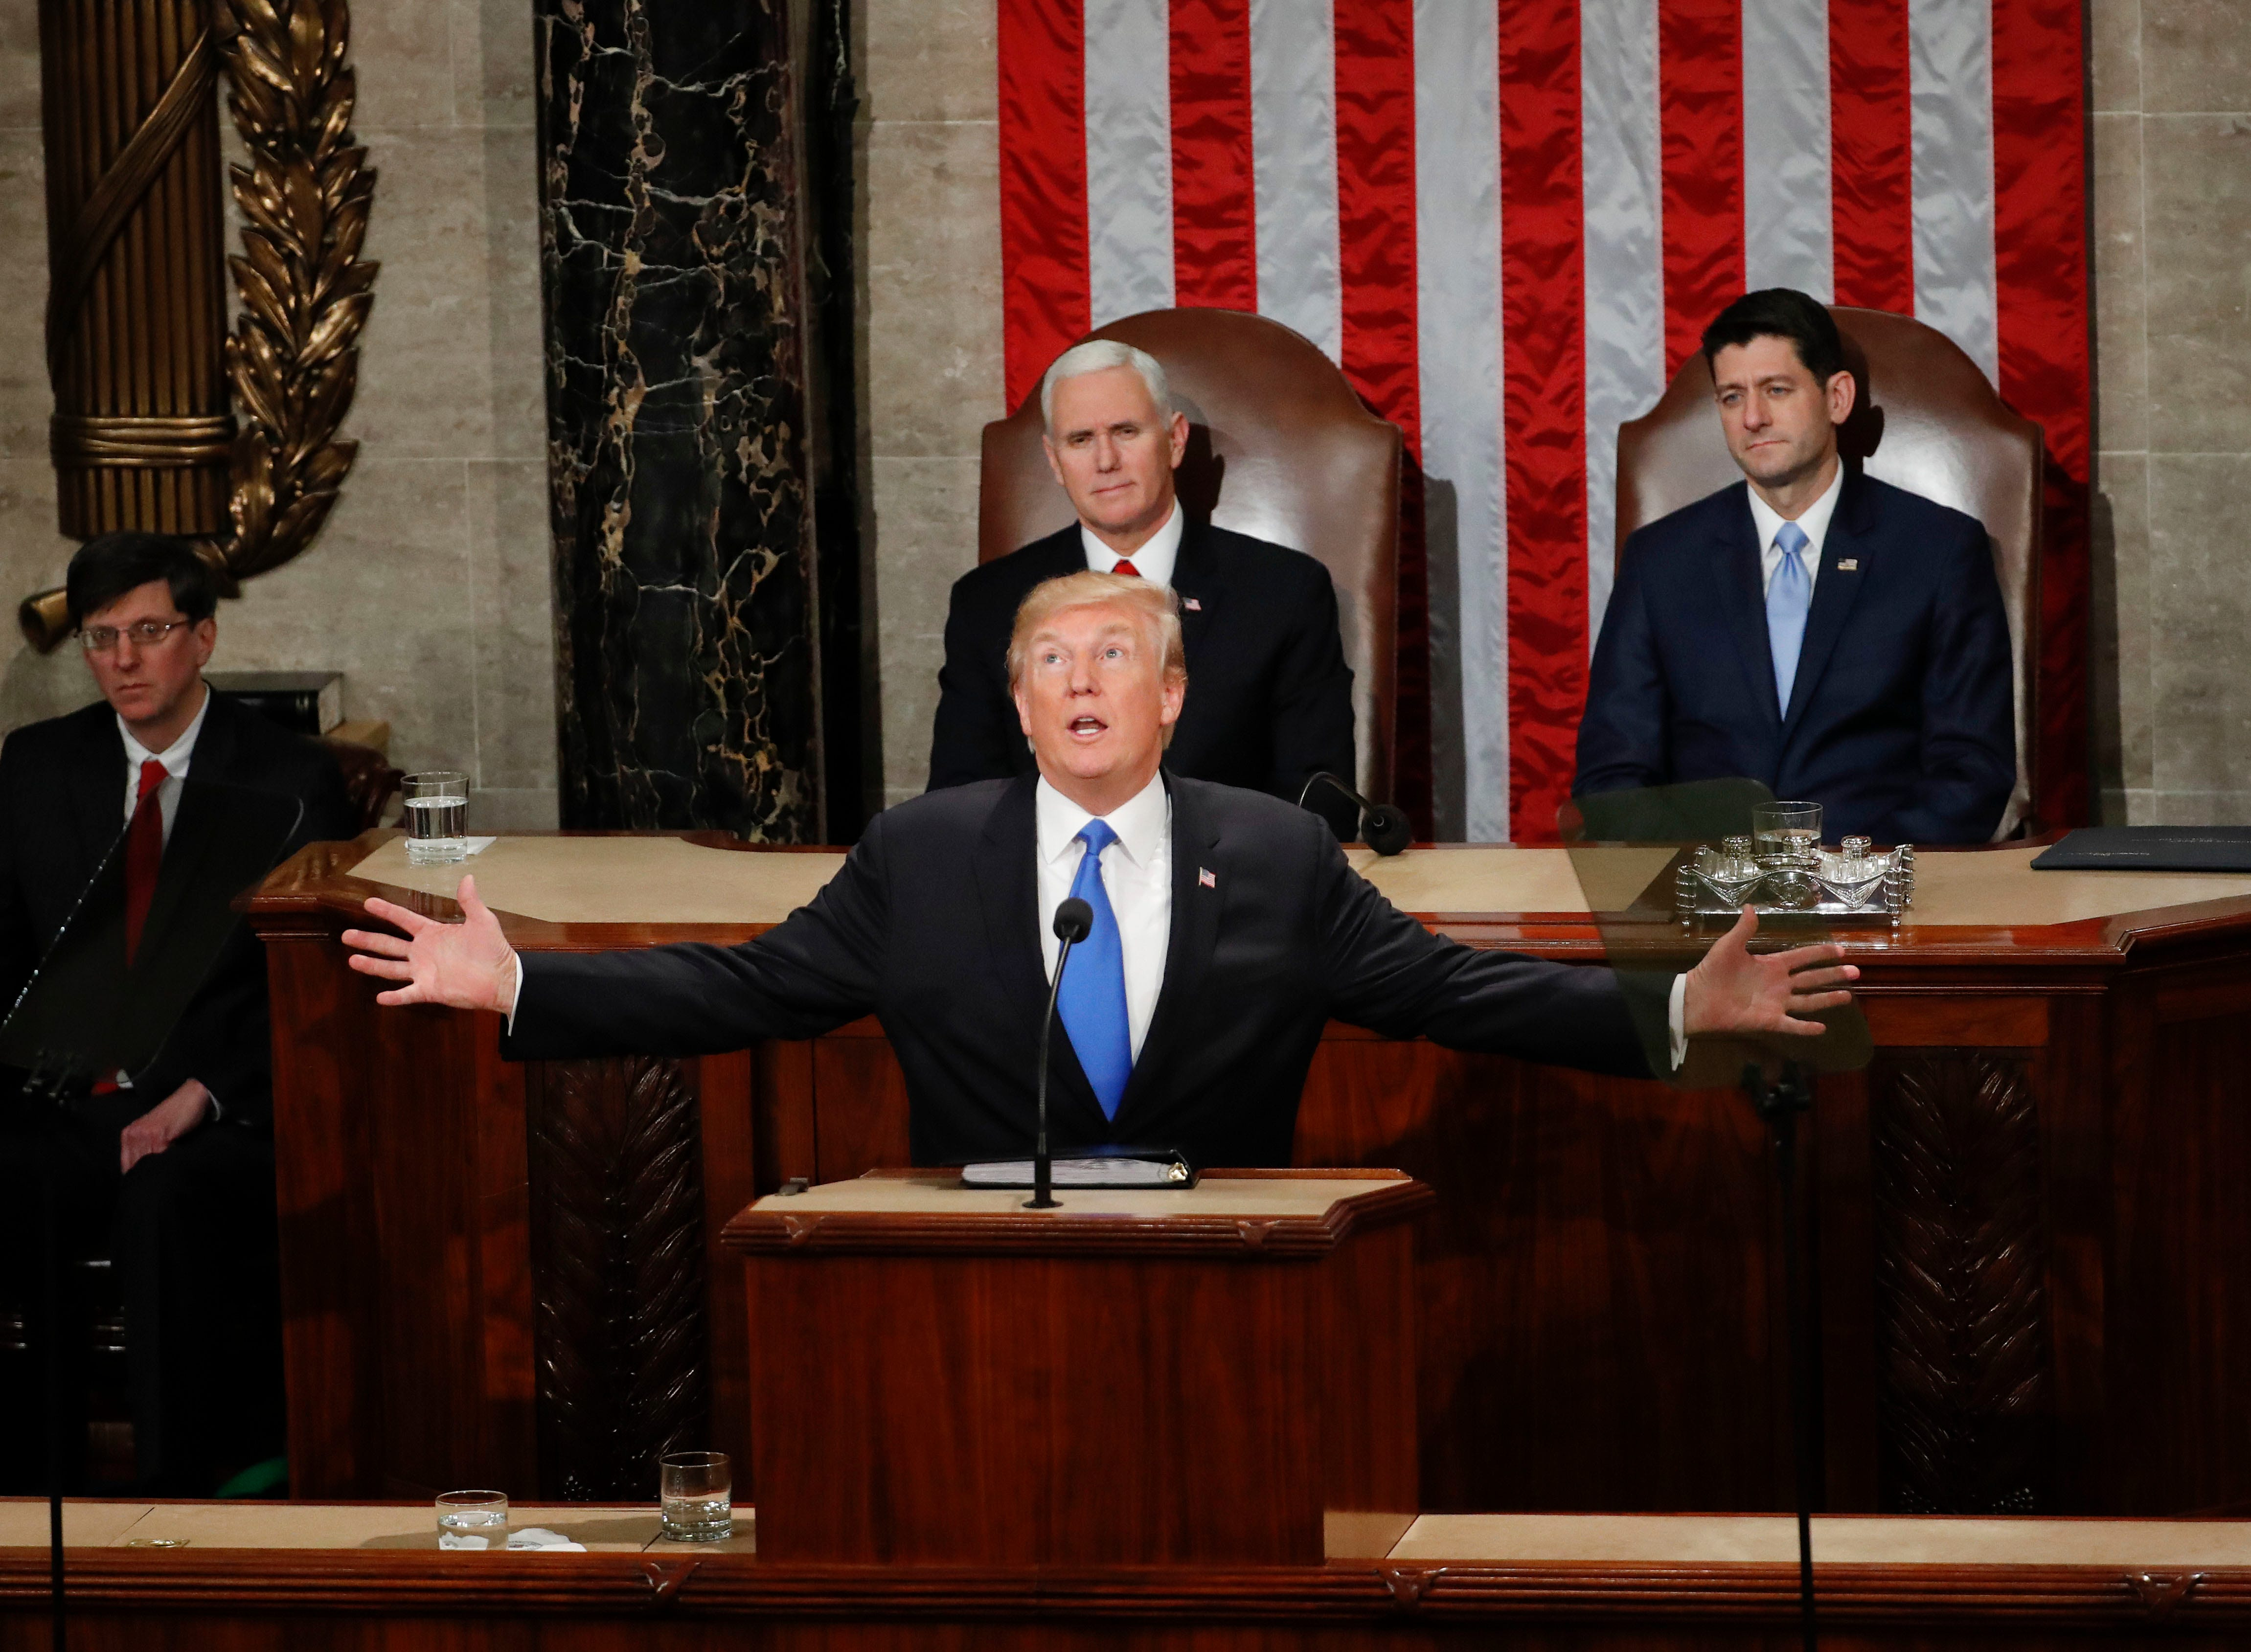 Republican feud: Donald Trump goes after Paul Ryan for going after him